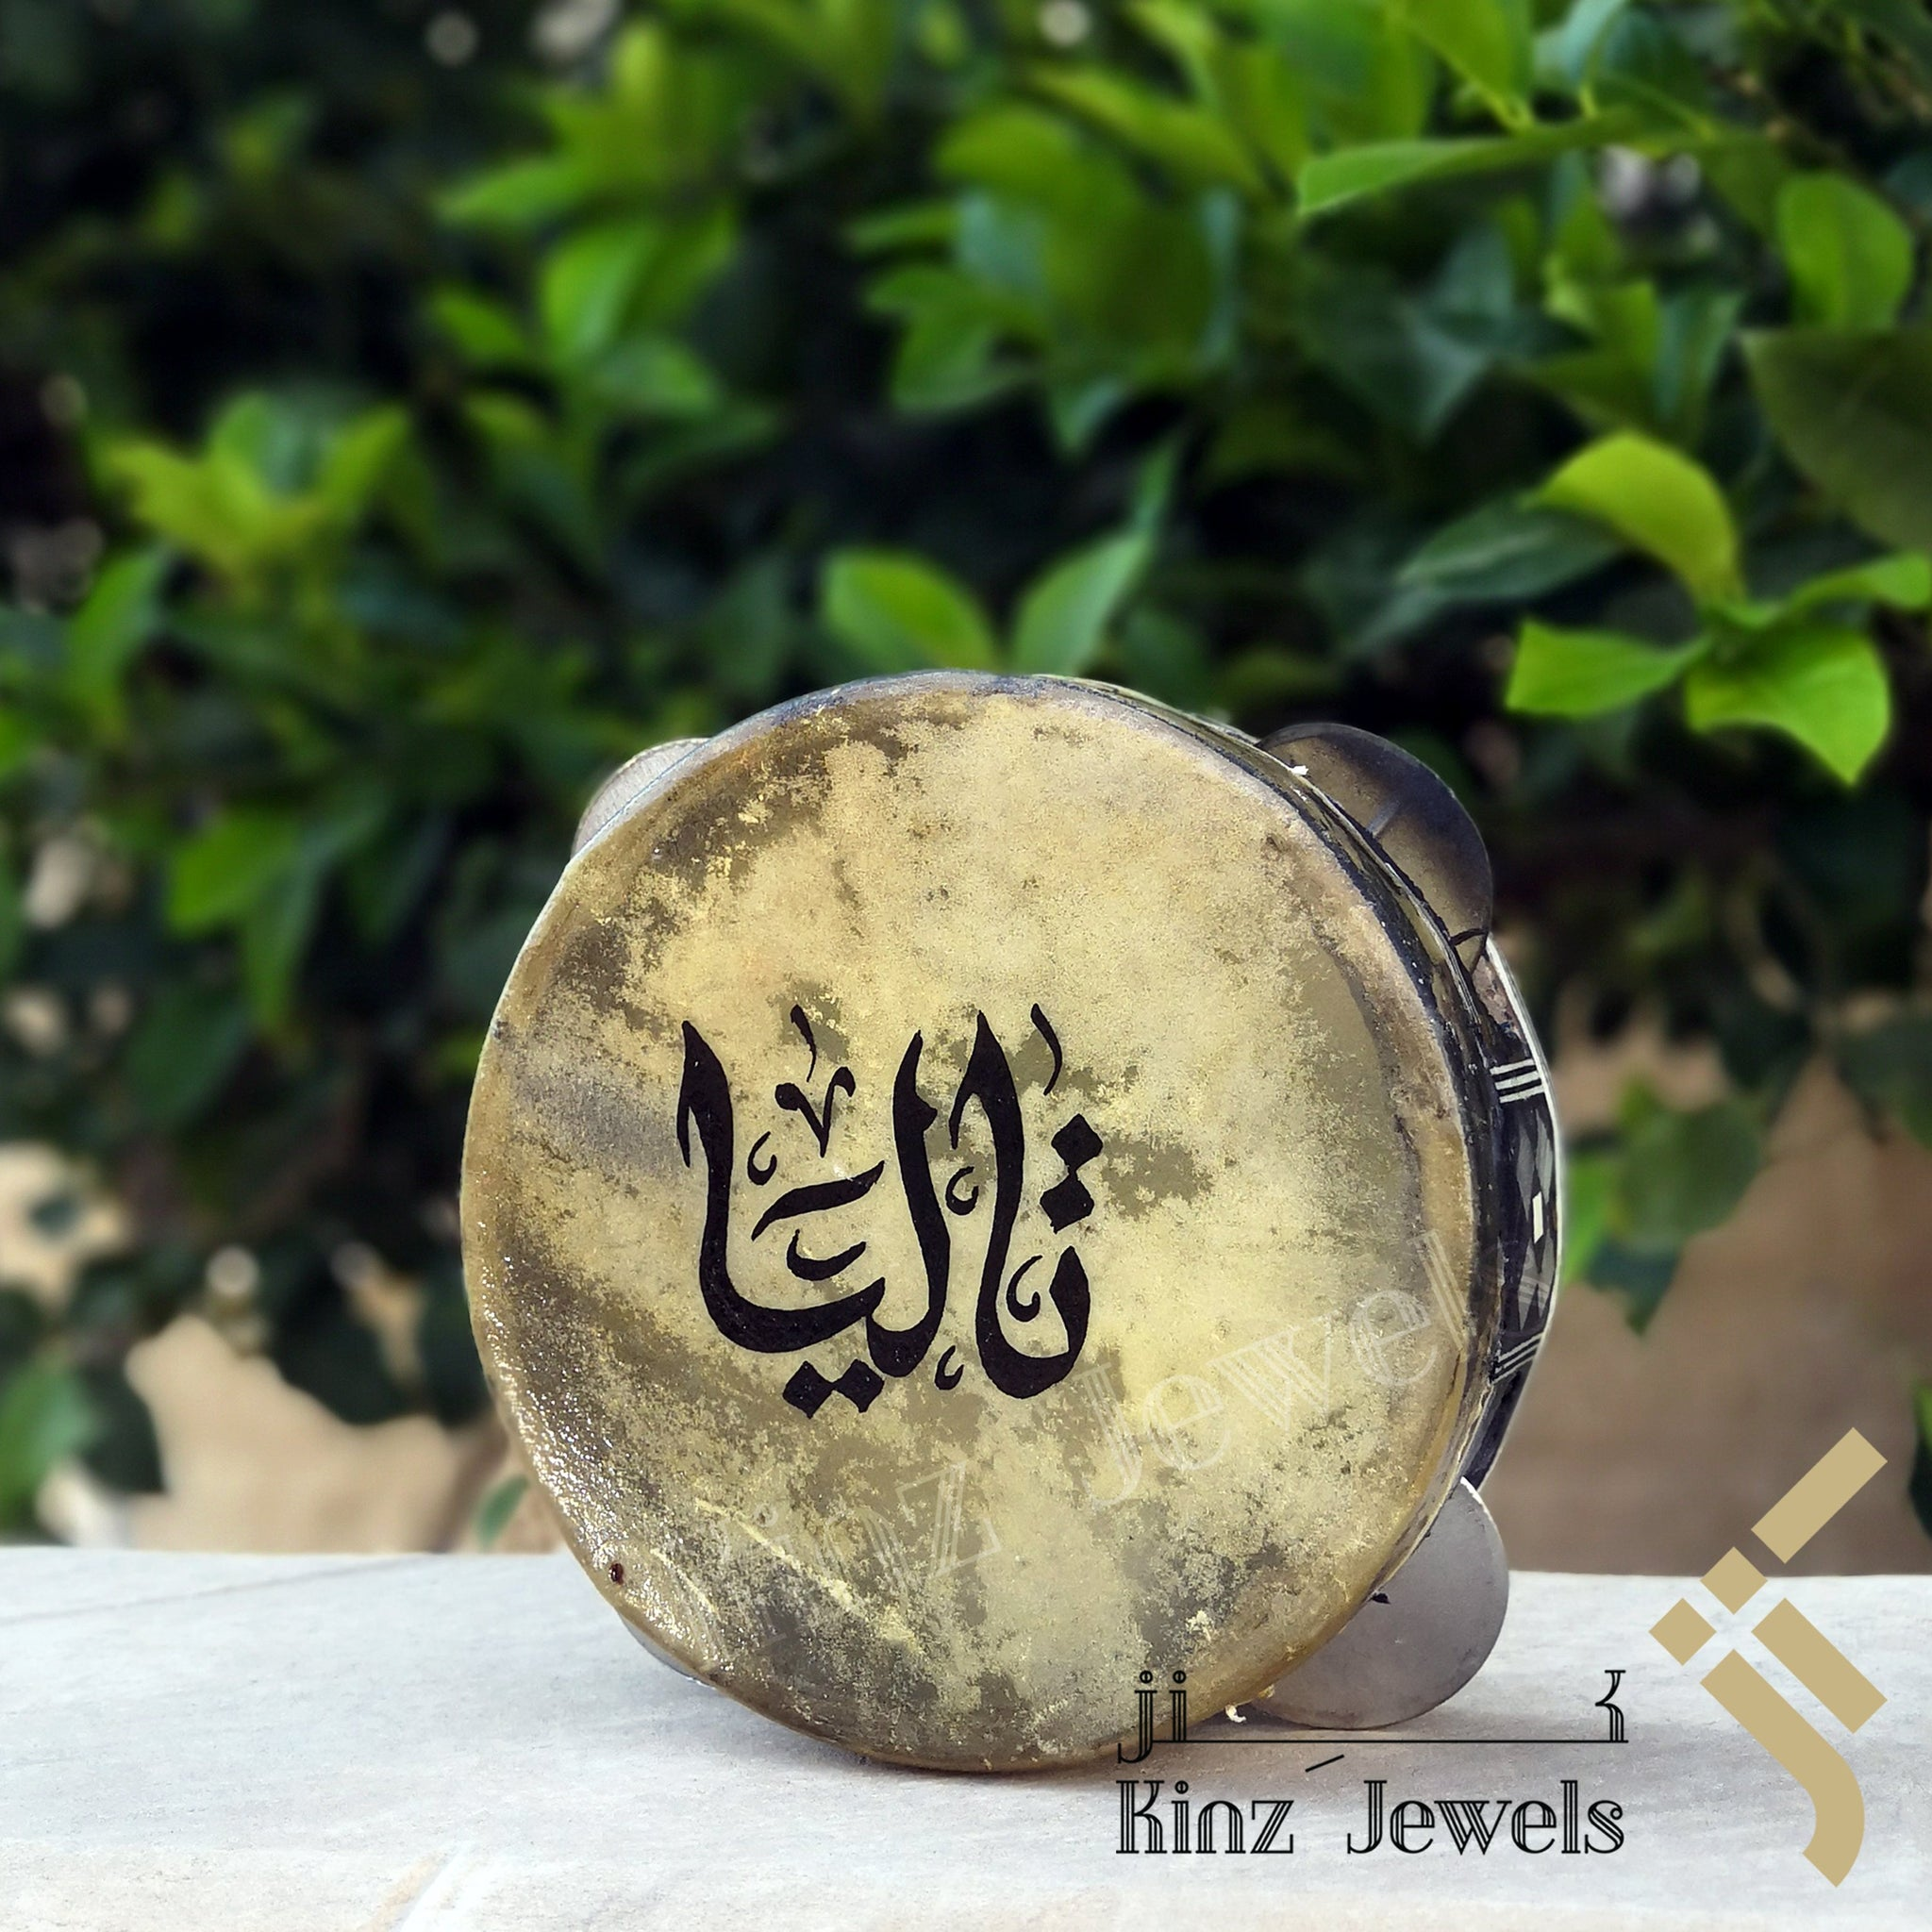 kinzjewels - Personalized Handcrafted Arabian Daf Music Instrument